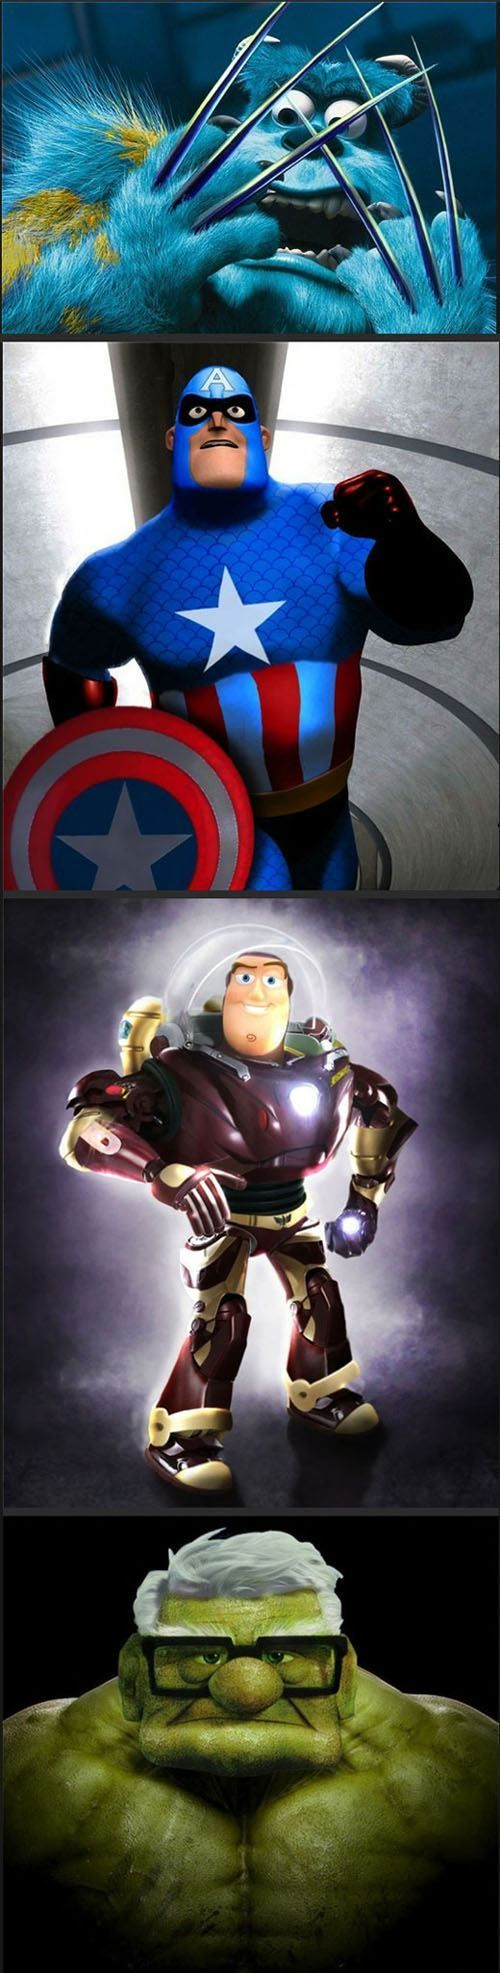 hahaha xD Funny! But if this is Disney Avengers then where's Thor? Black Widow? Hawkeye?